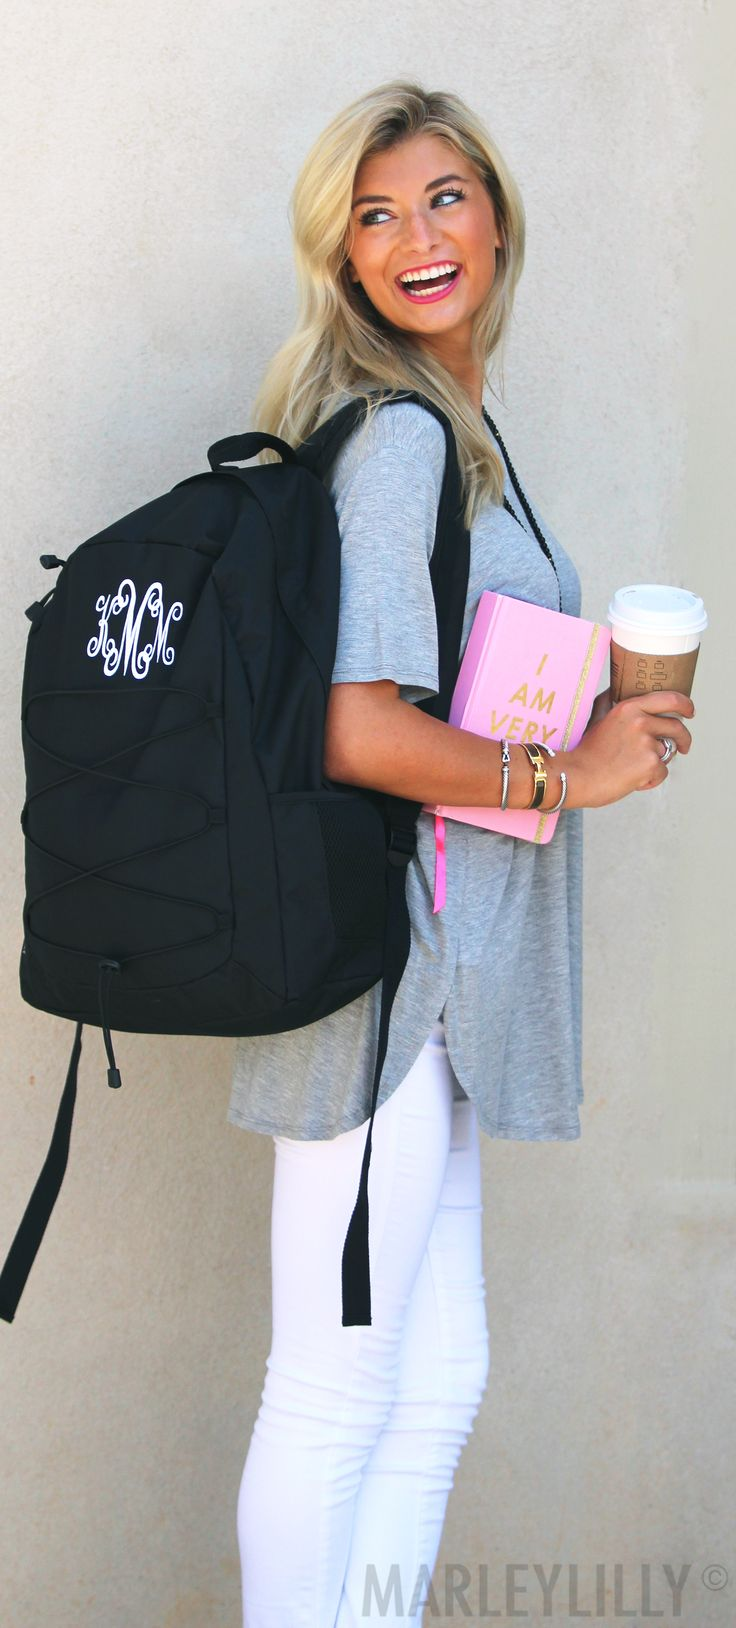 NEW Monogrammed Laptop Backpack is our favorite back to school item! Shop now to personalize yours!